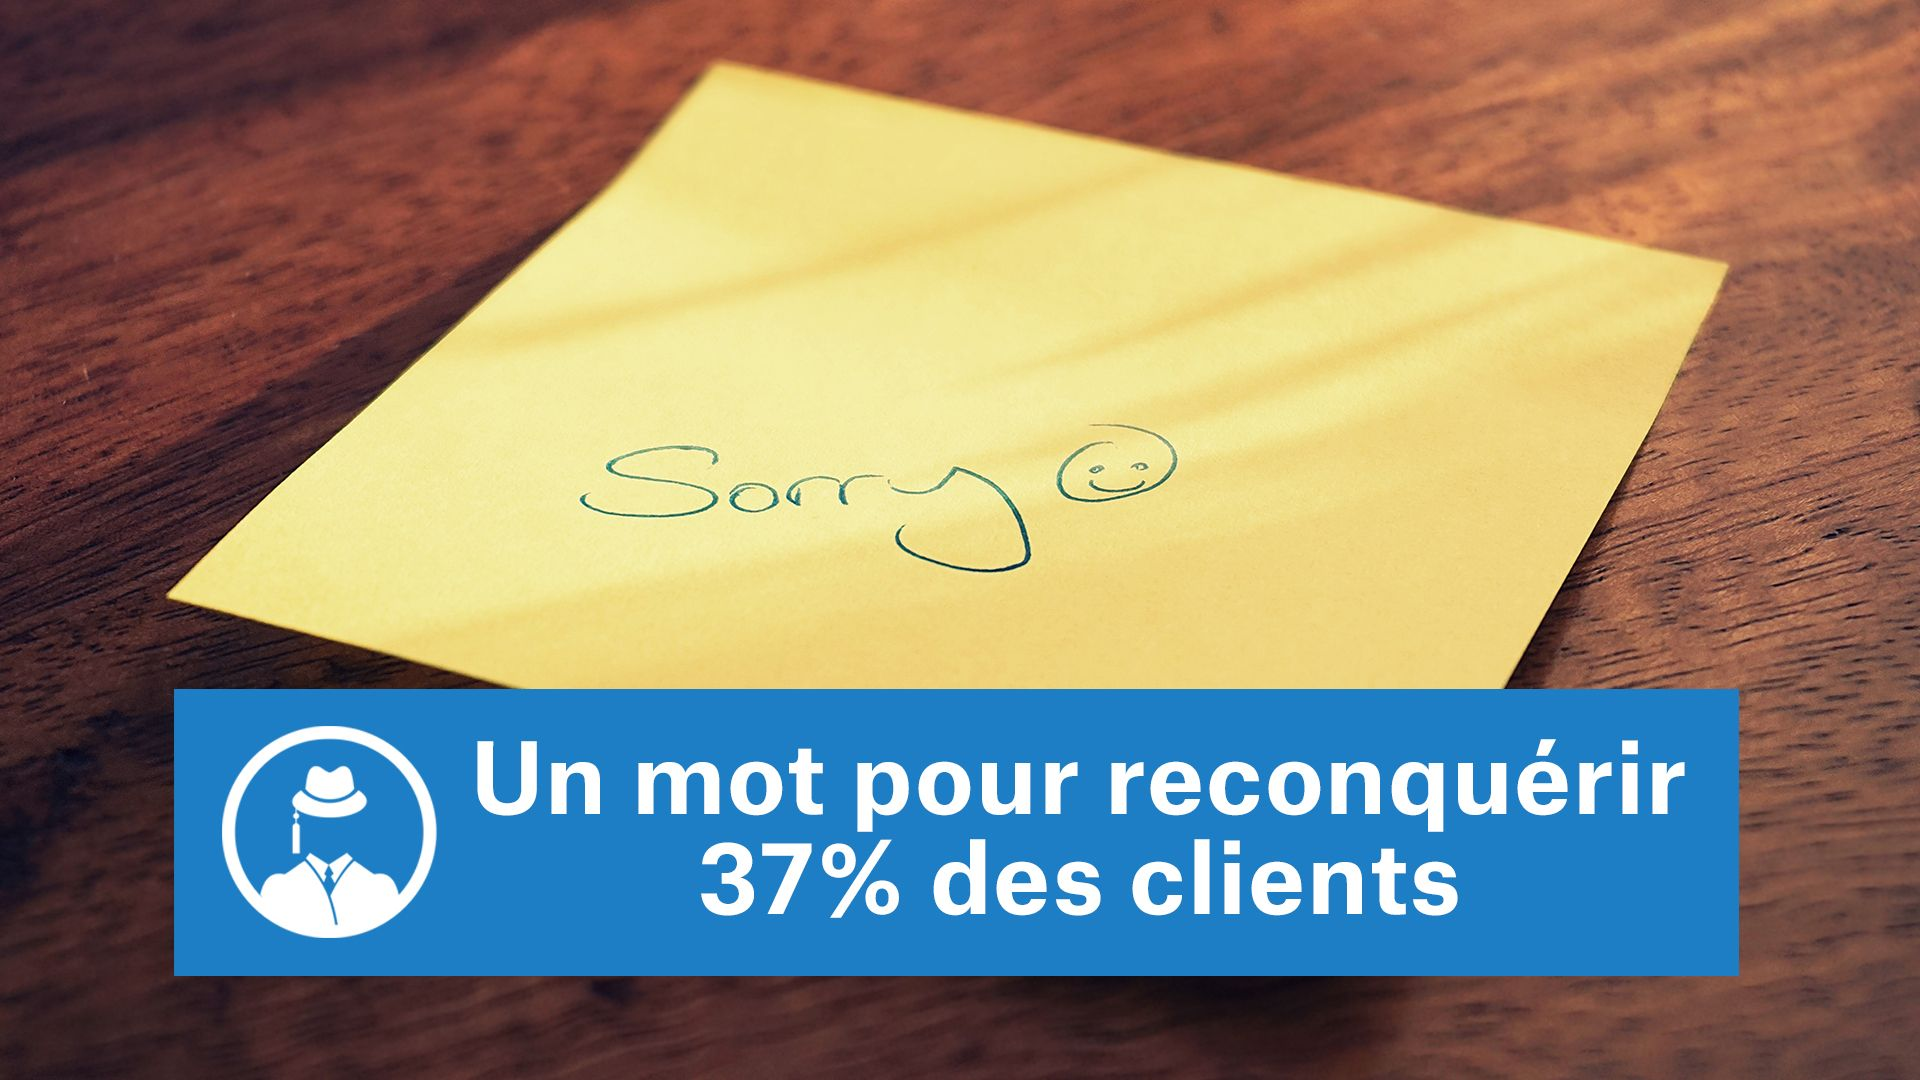 Un mot pour reconquérir 37% des clients #GrowthHacking #WebMarketing #FormationGrowthHacking #CentreDeFormationFrance #TunnelAARRR #AARRR #SocialMedia #CommunityManagement #SEO #MarketingDigital #SiteWeb